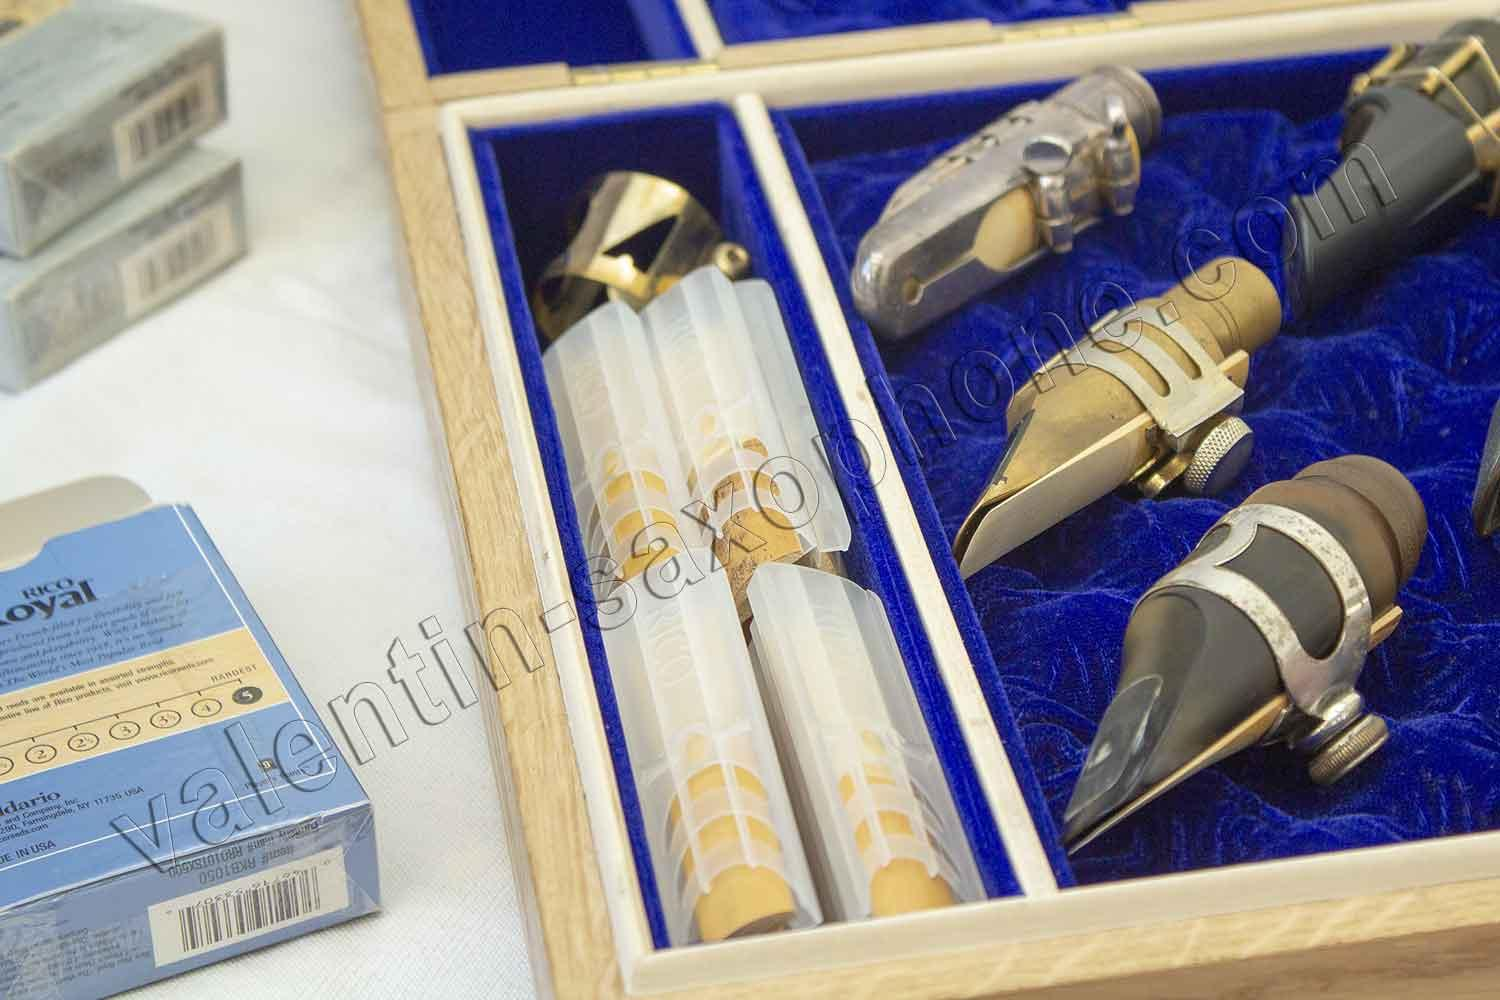 Valentin cases : About thirty free reeds take place in the compartment.